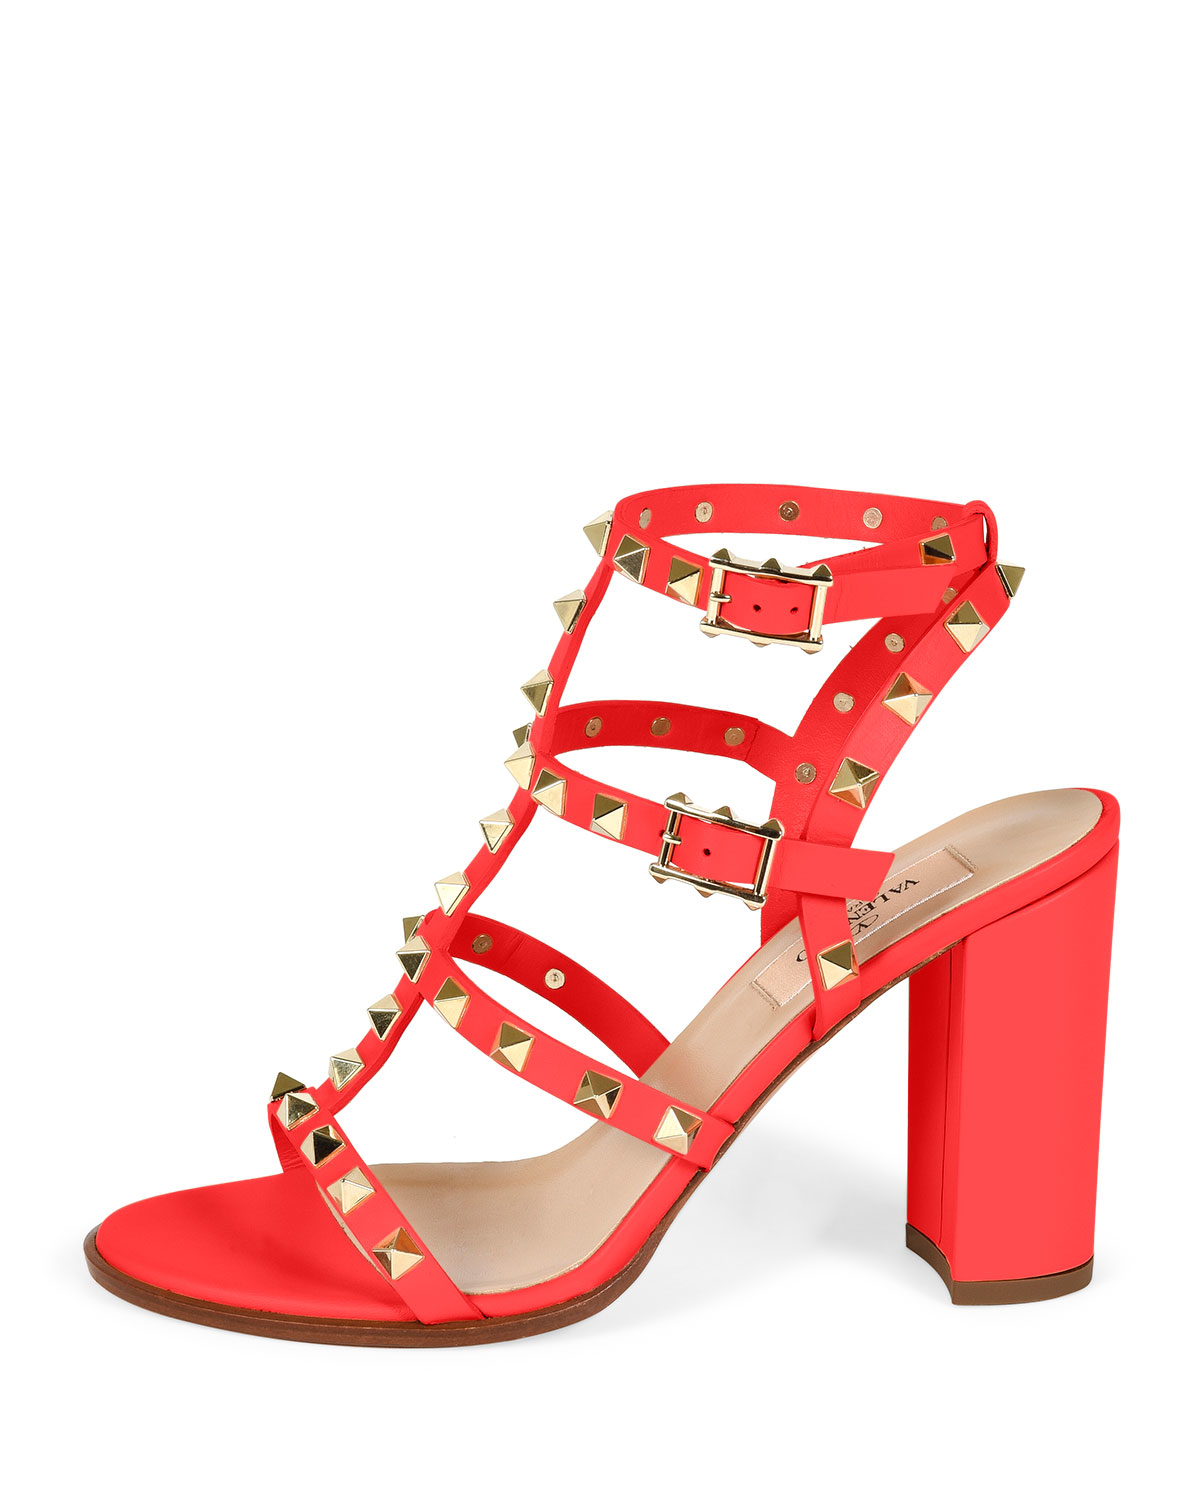 Valentino Rockstud Leather Sandals in